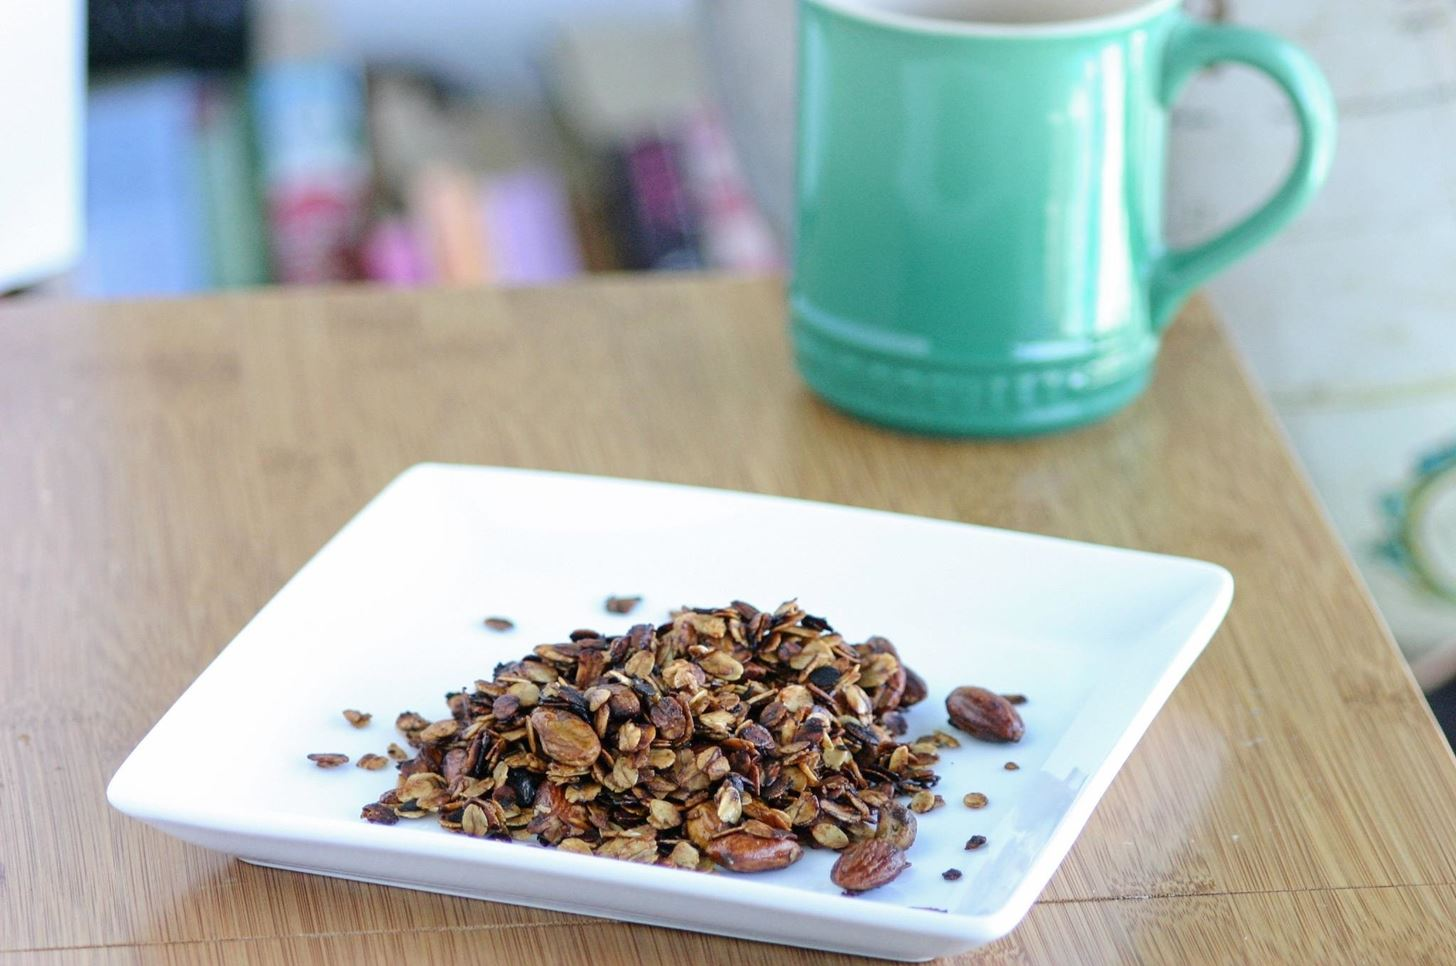 Ditch the oven make crunchy stovetop granola in just 5 minutes image by brady klopferfood hacks daily ccuart Images